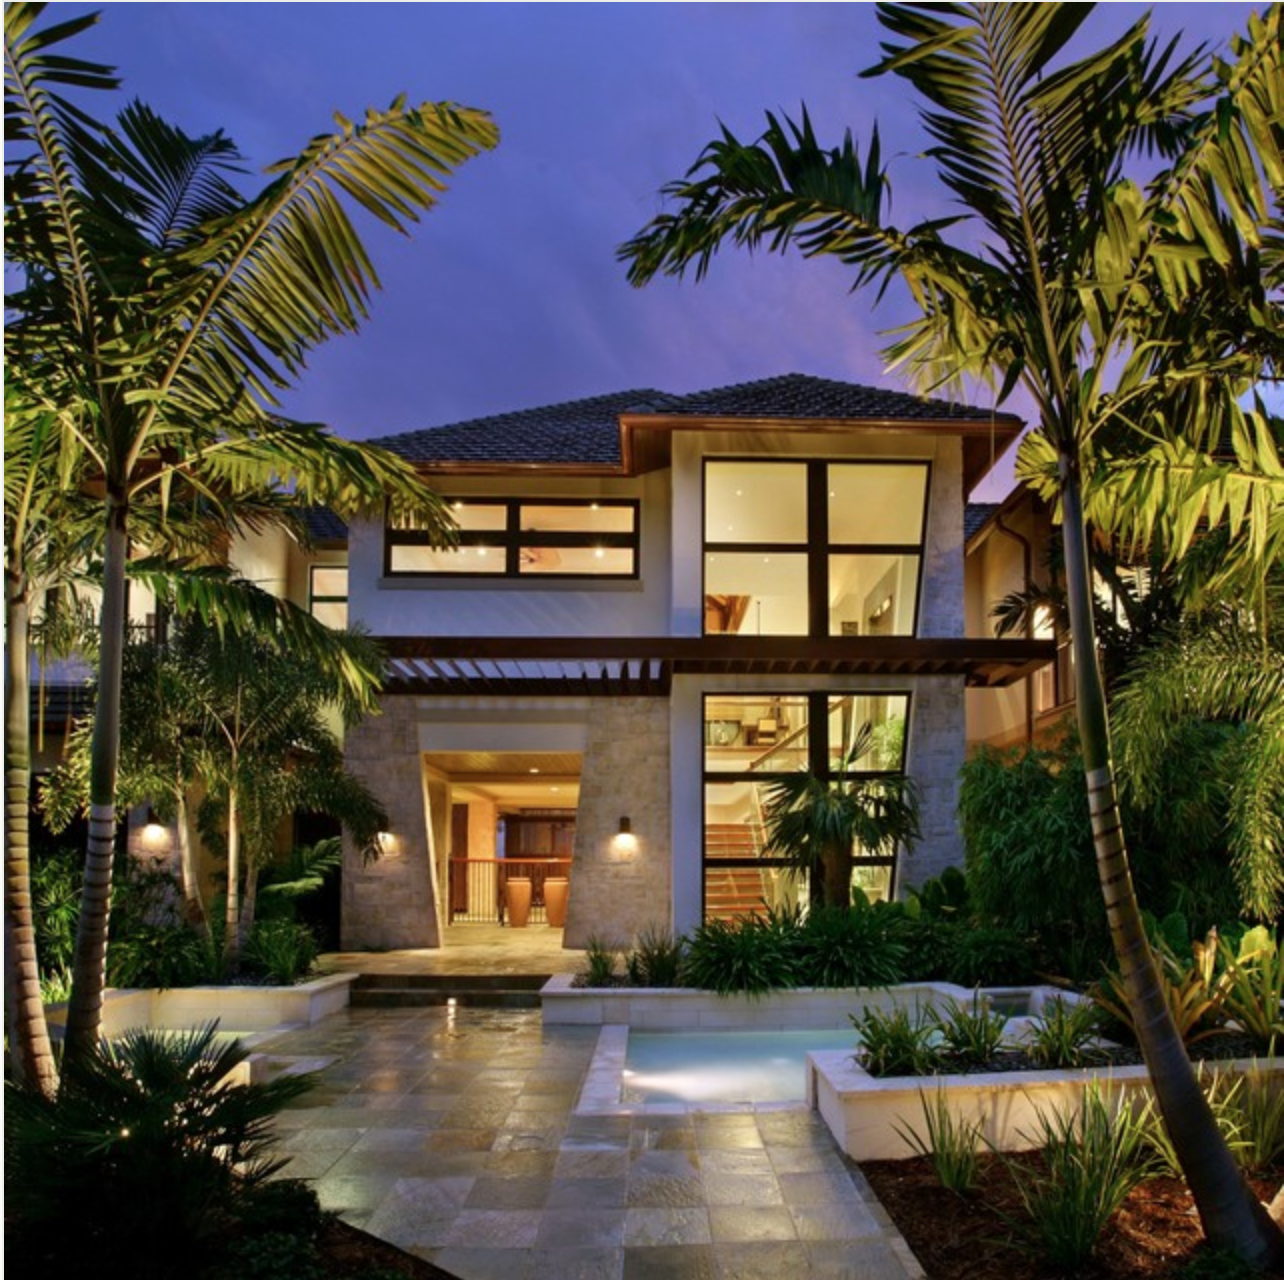 Hawaiian Home Design Ideas: Re-pinned By Www.borabound.com